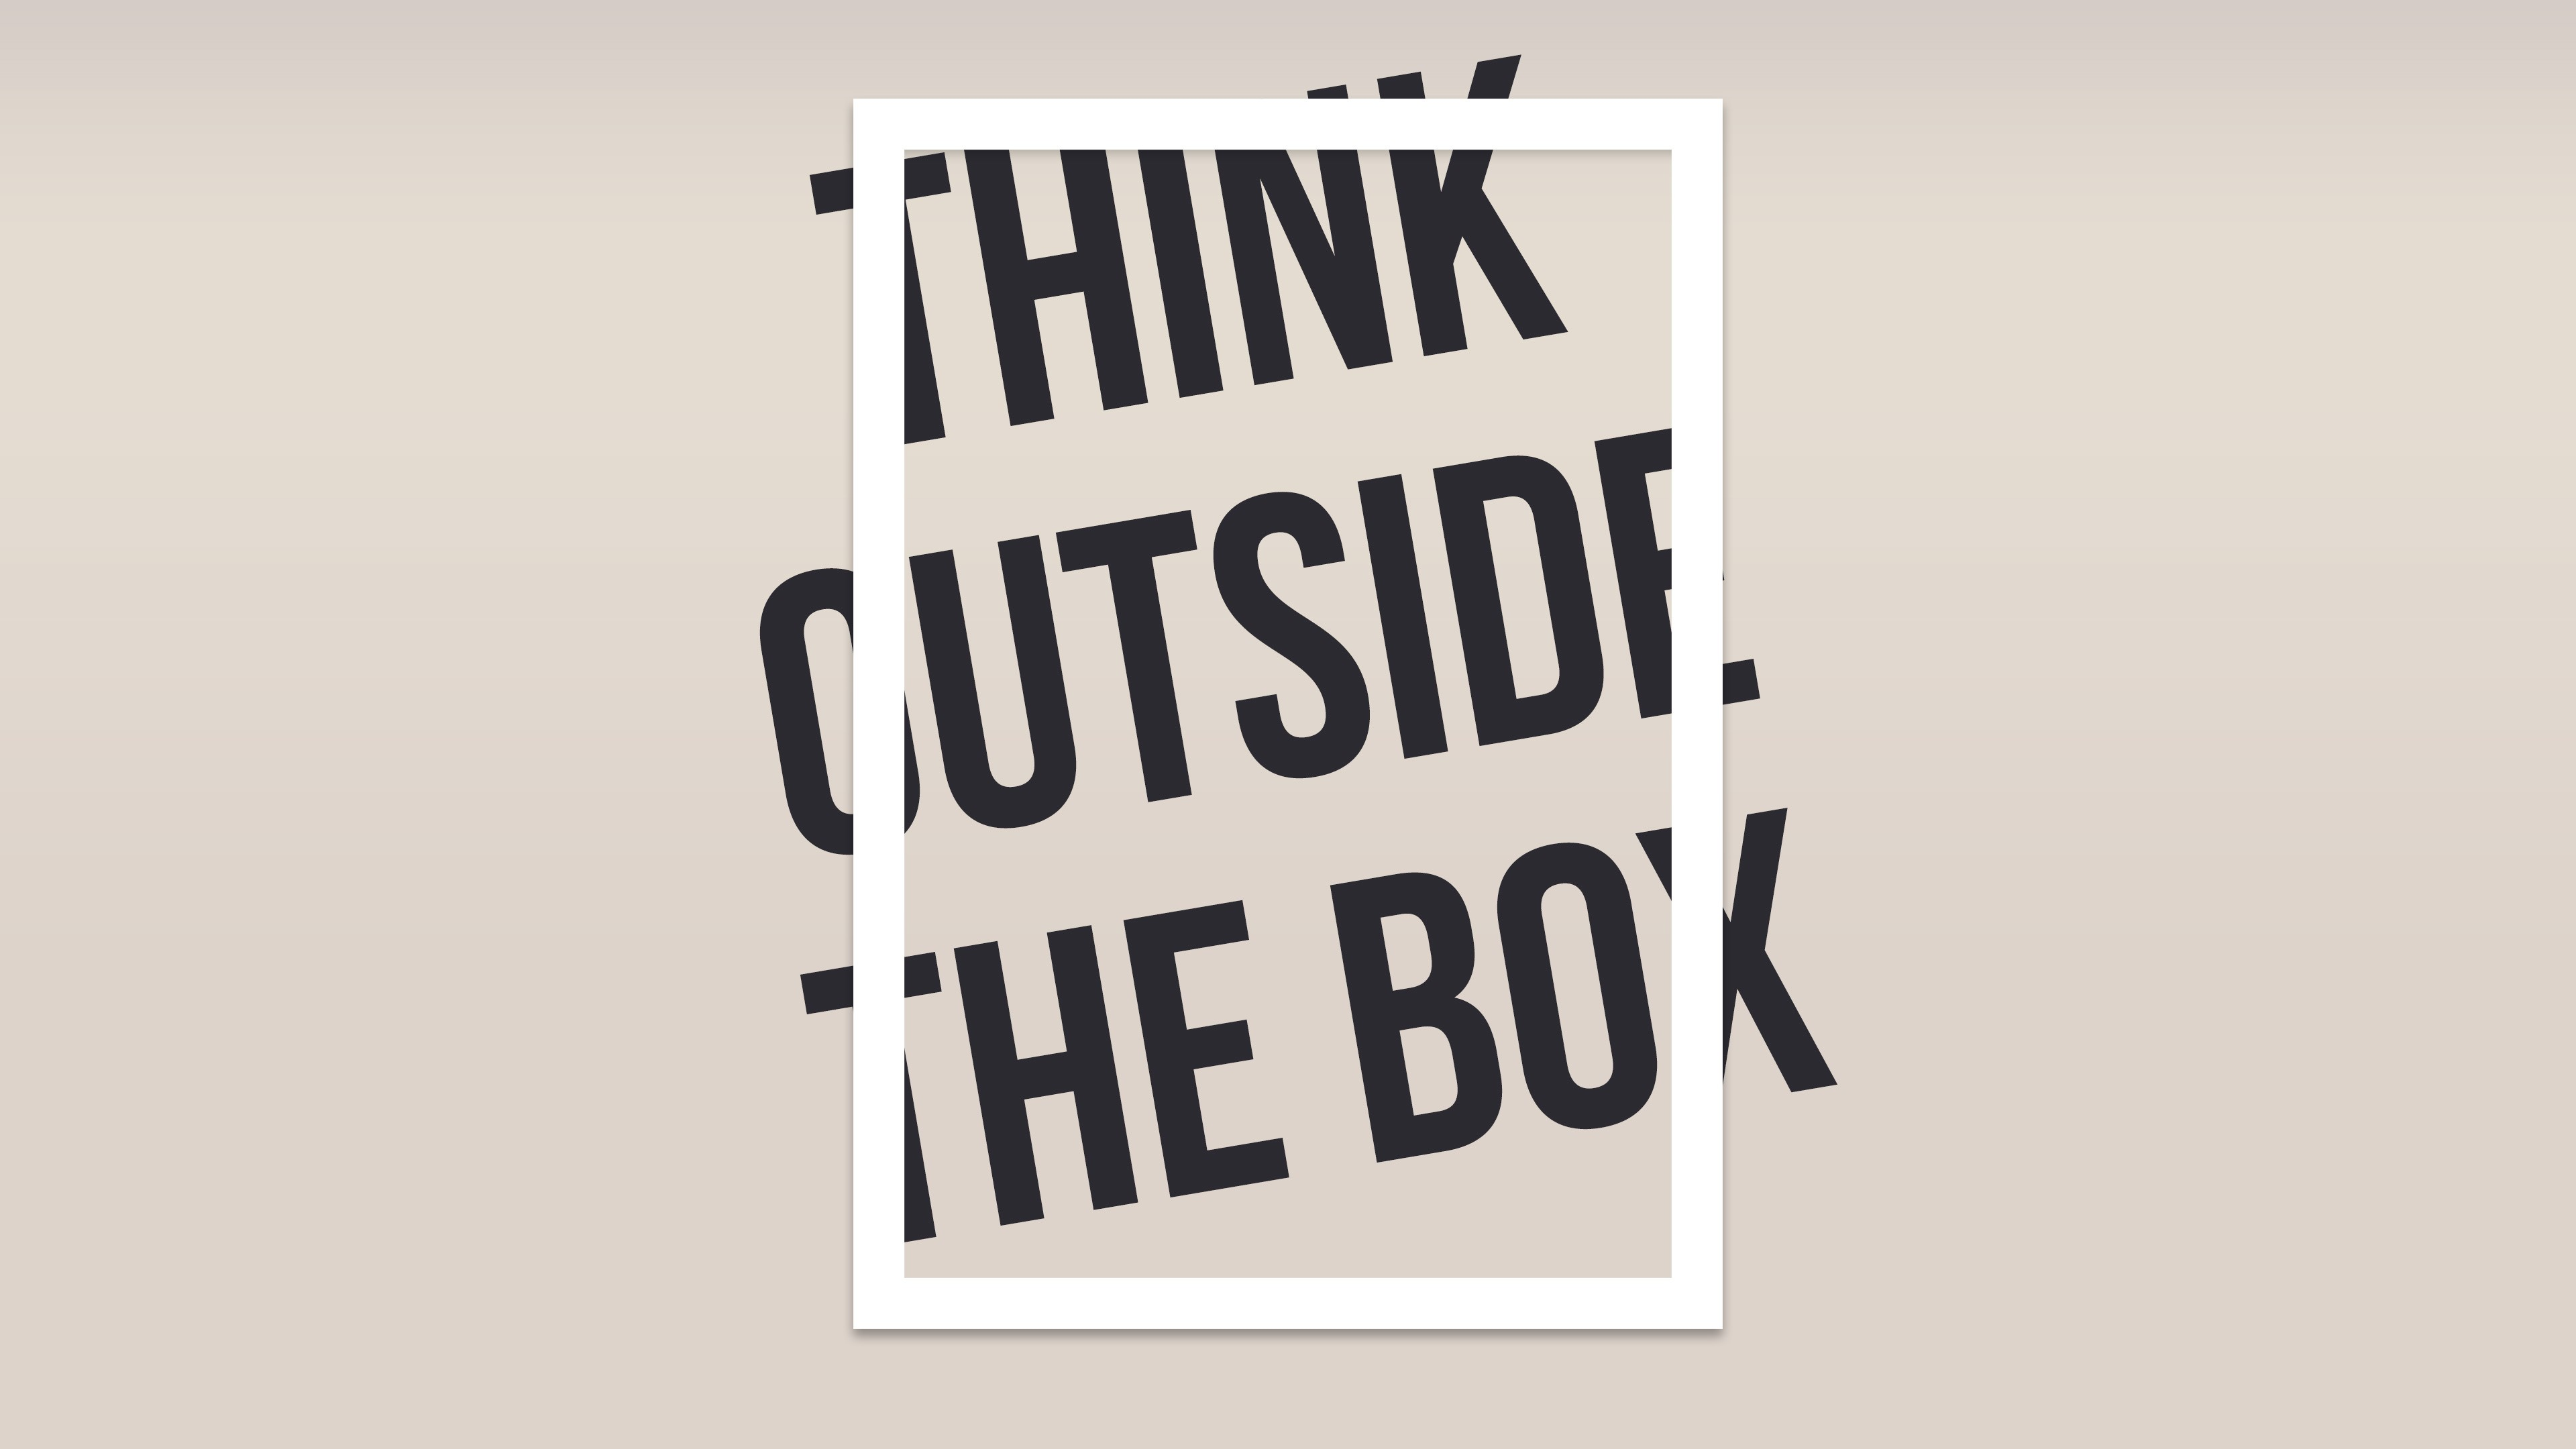 think outside the box hd typography 4k wallpapers images backgrounds photos and pictures. Black Bedroom Furniture Sets. Home Design Ideas